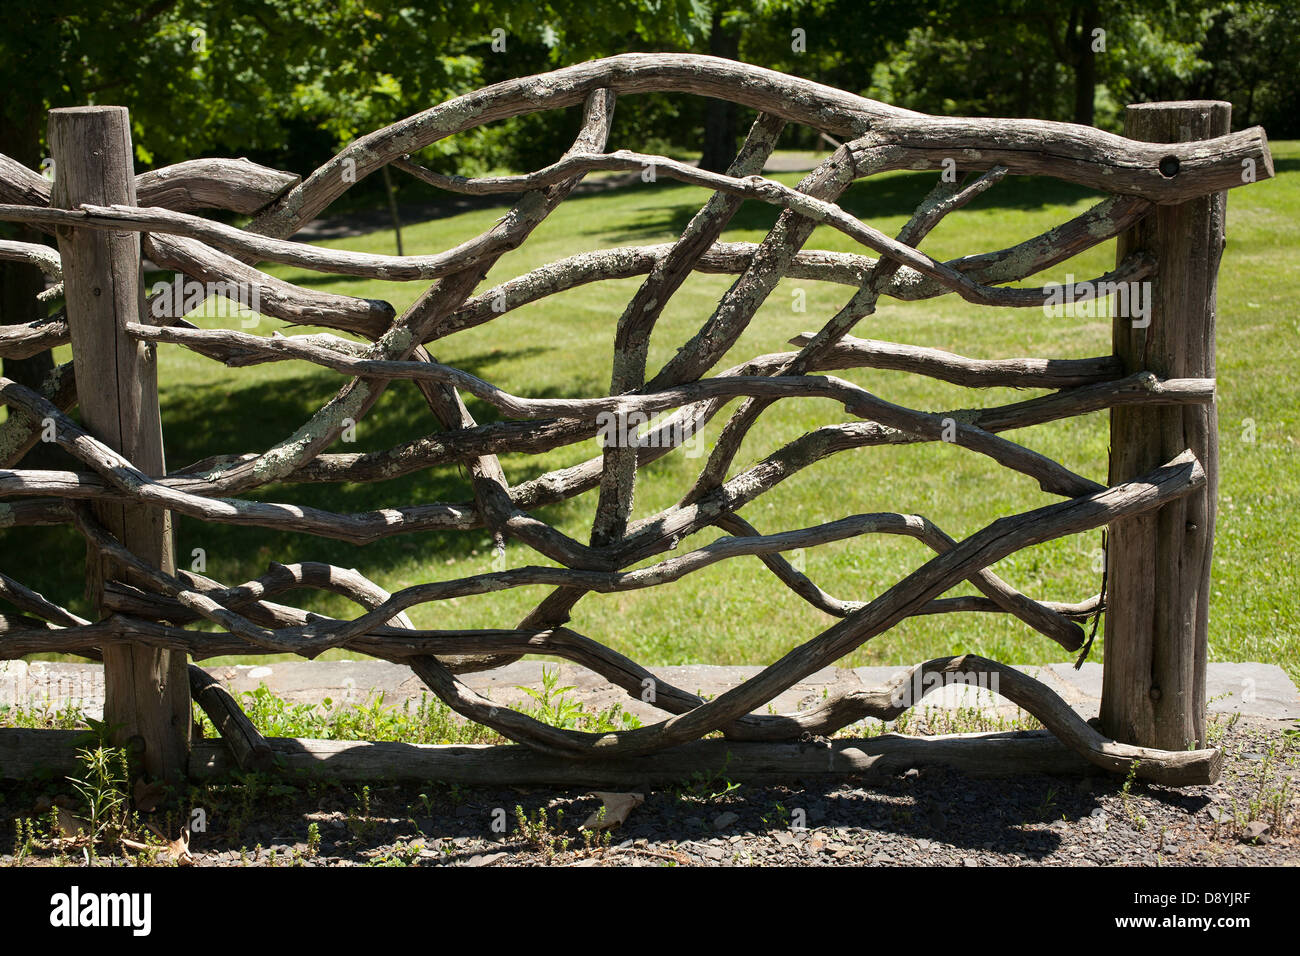 Woven Branches Make A Rustic Fence At The Home Of Frederic Church In Hudson New York